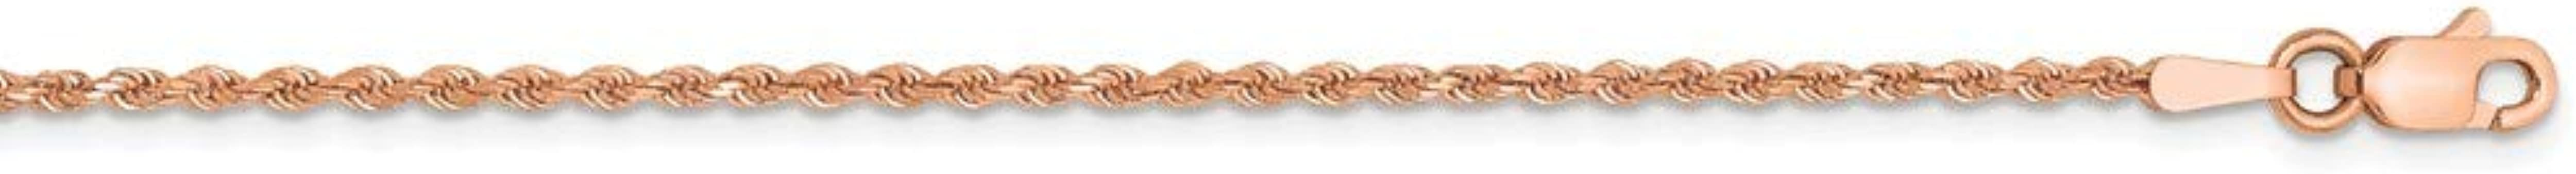 14k Sparkle-Cut Cable Chain Necklace in Yellow Gold Rose Gold White Gold Choice of Lengths 16 18 20 24 22 30 14 26 and Variety of mm Options